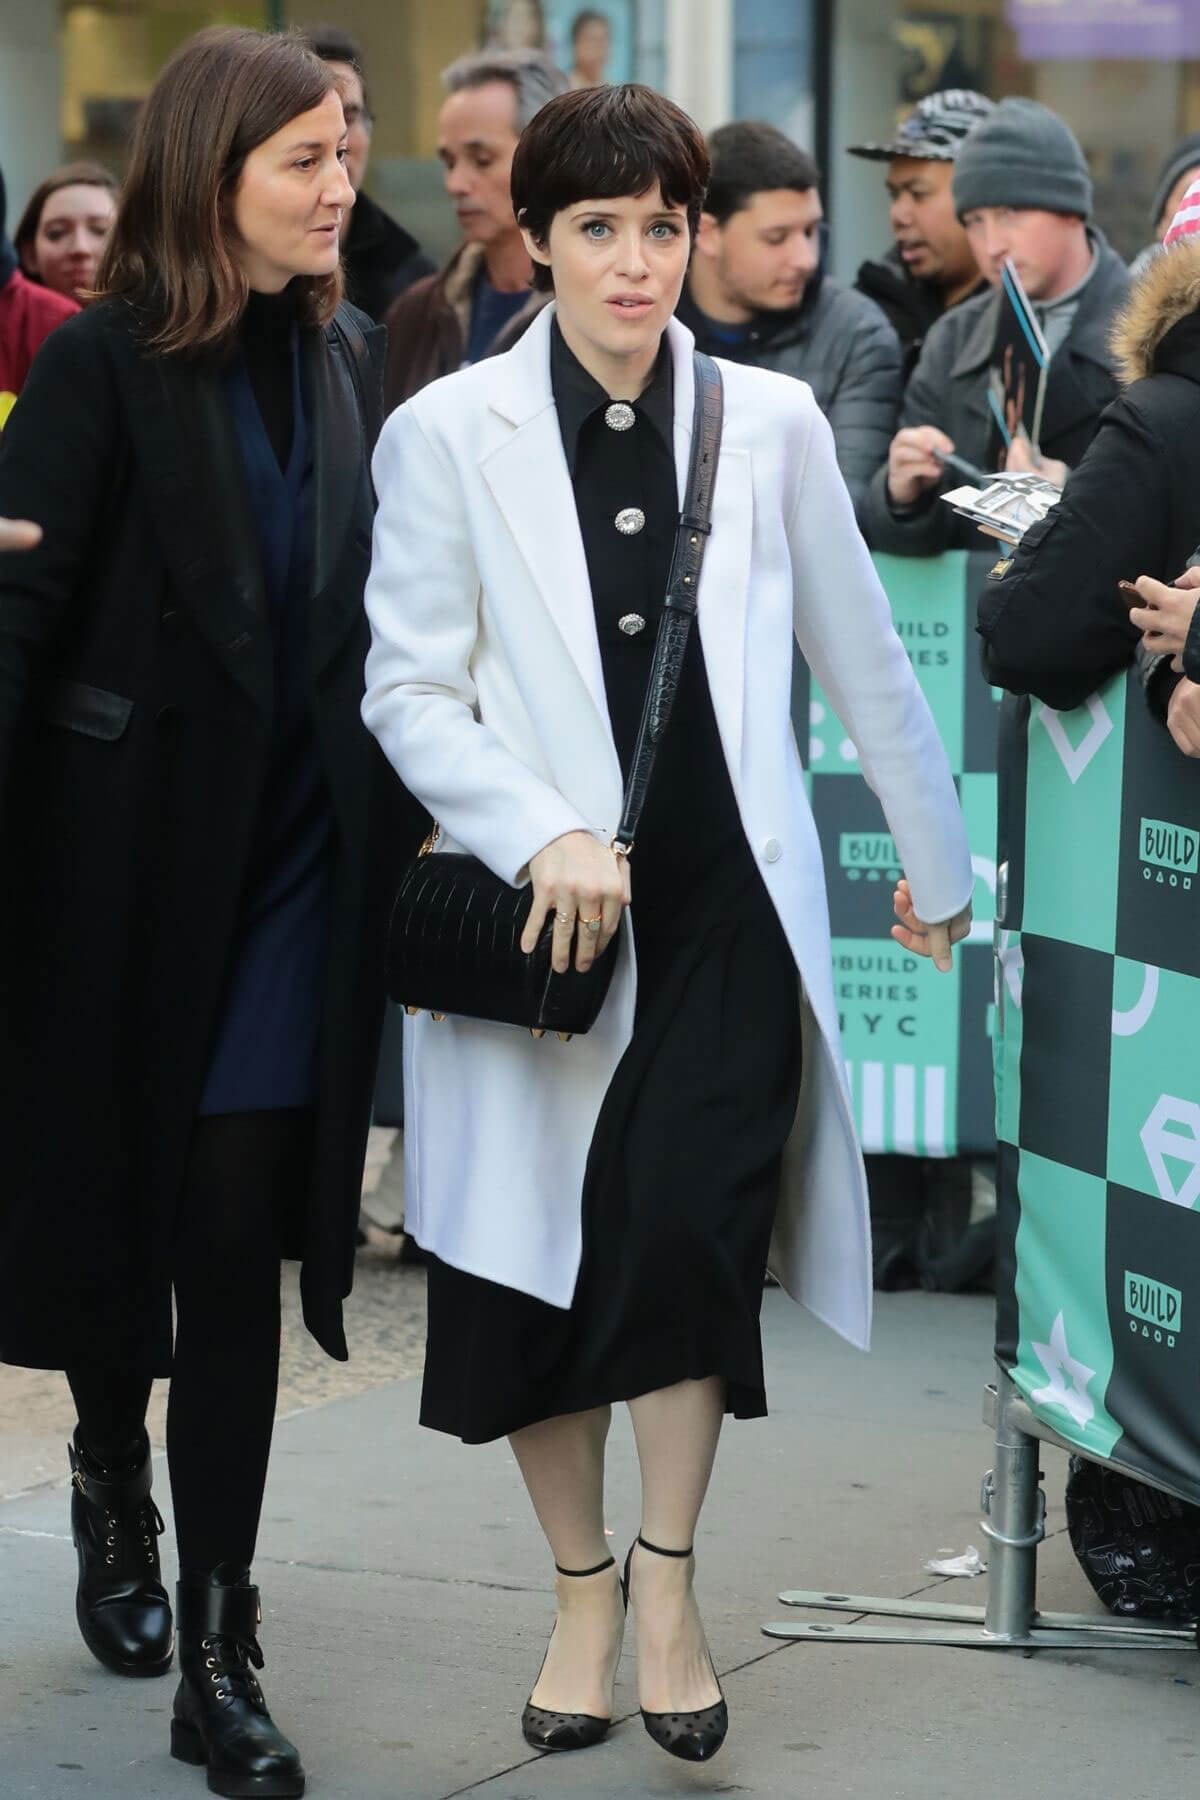 Claire Foy Stills Arrives at AOL Build Studio in New York 2017/12/04